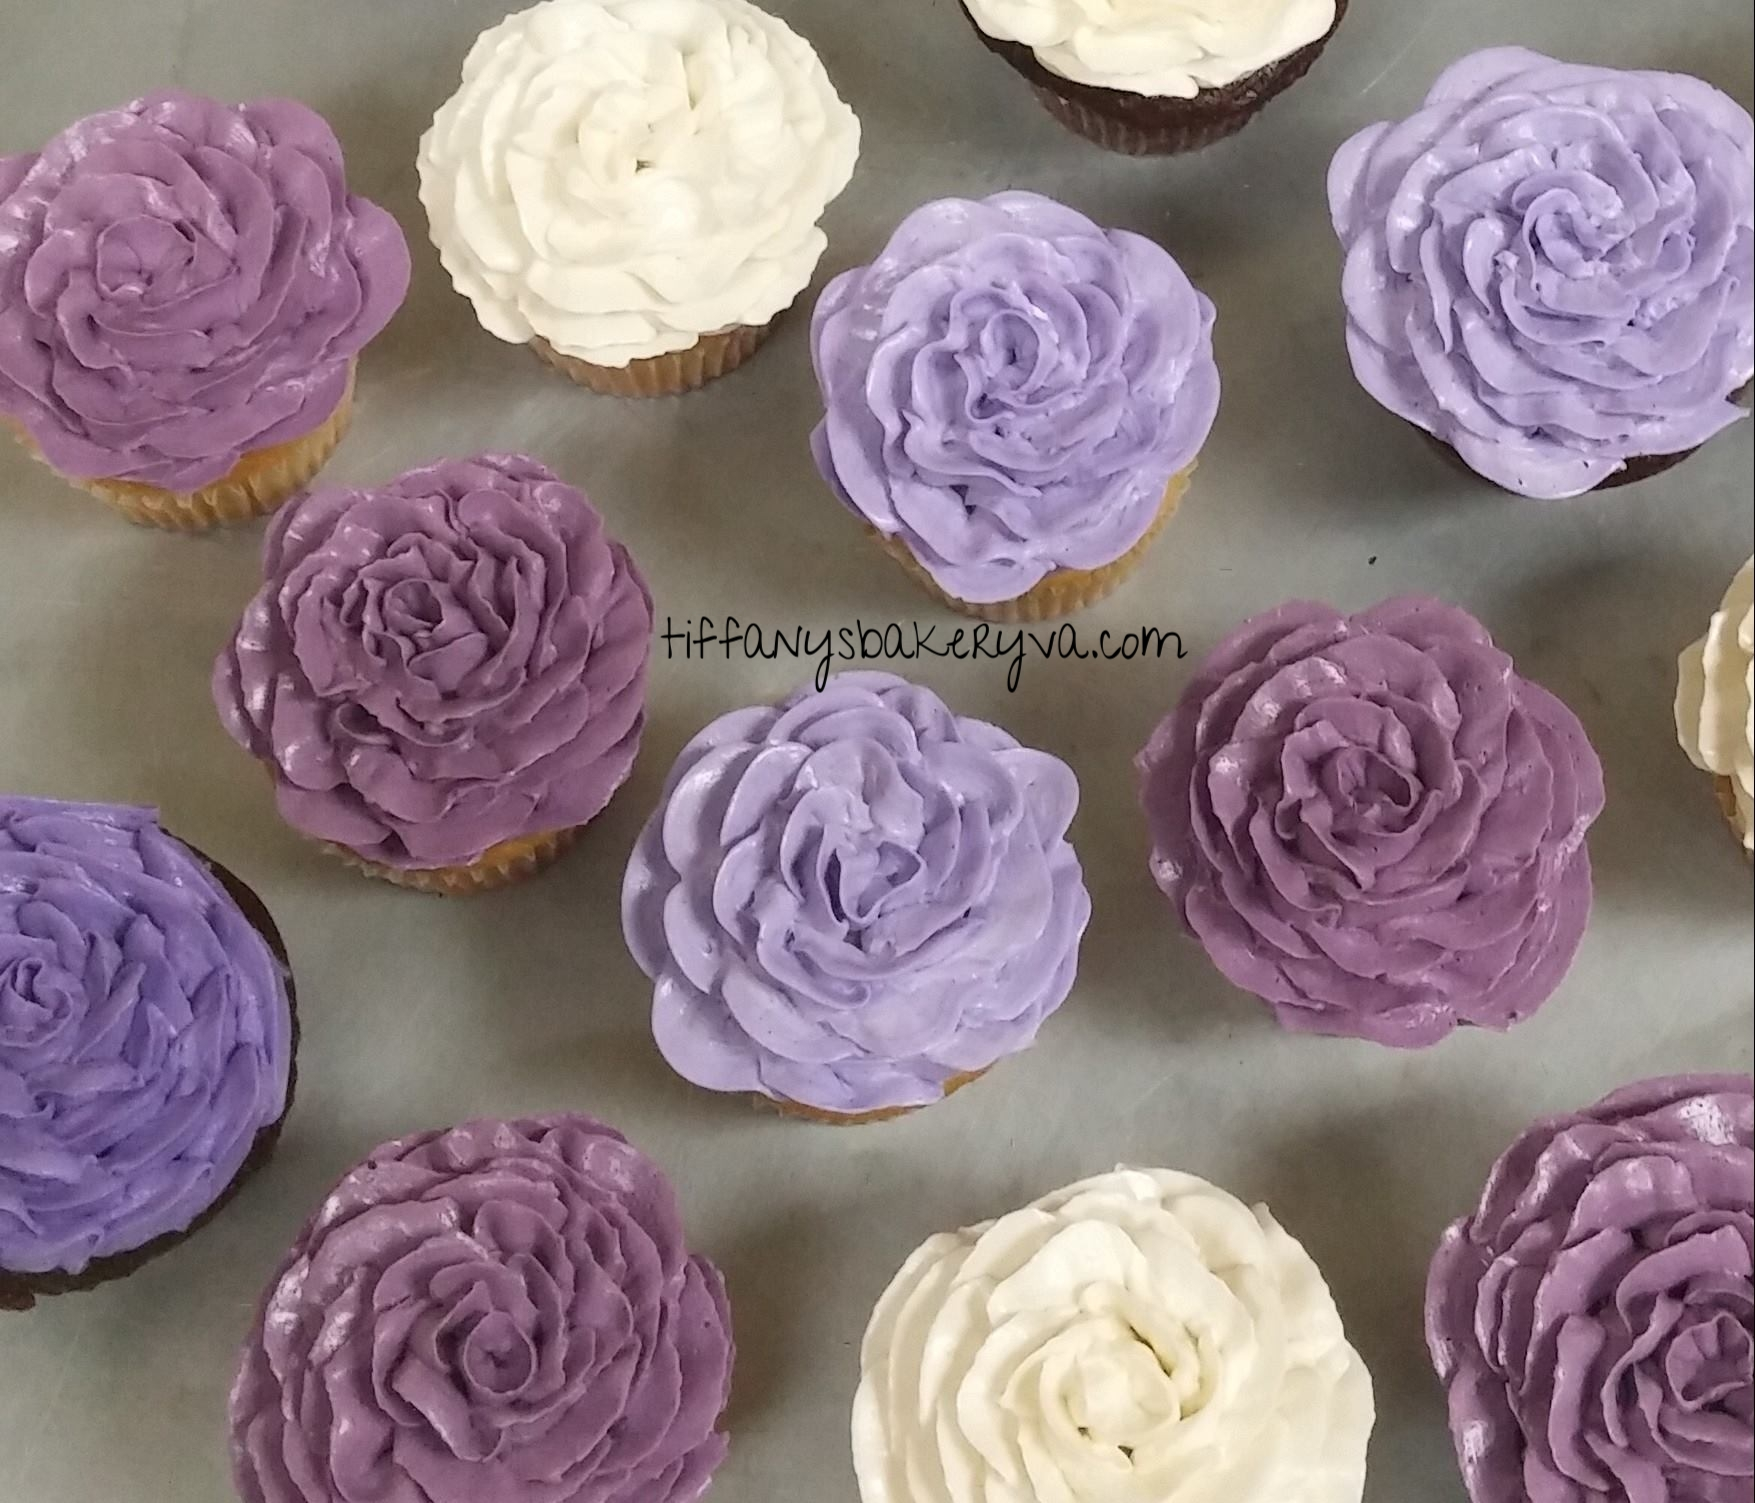 Sprouting Rose Cupcakes